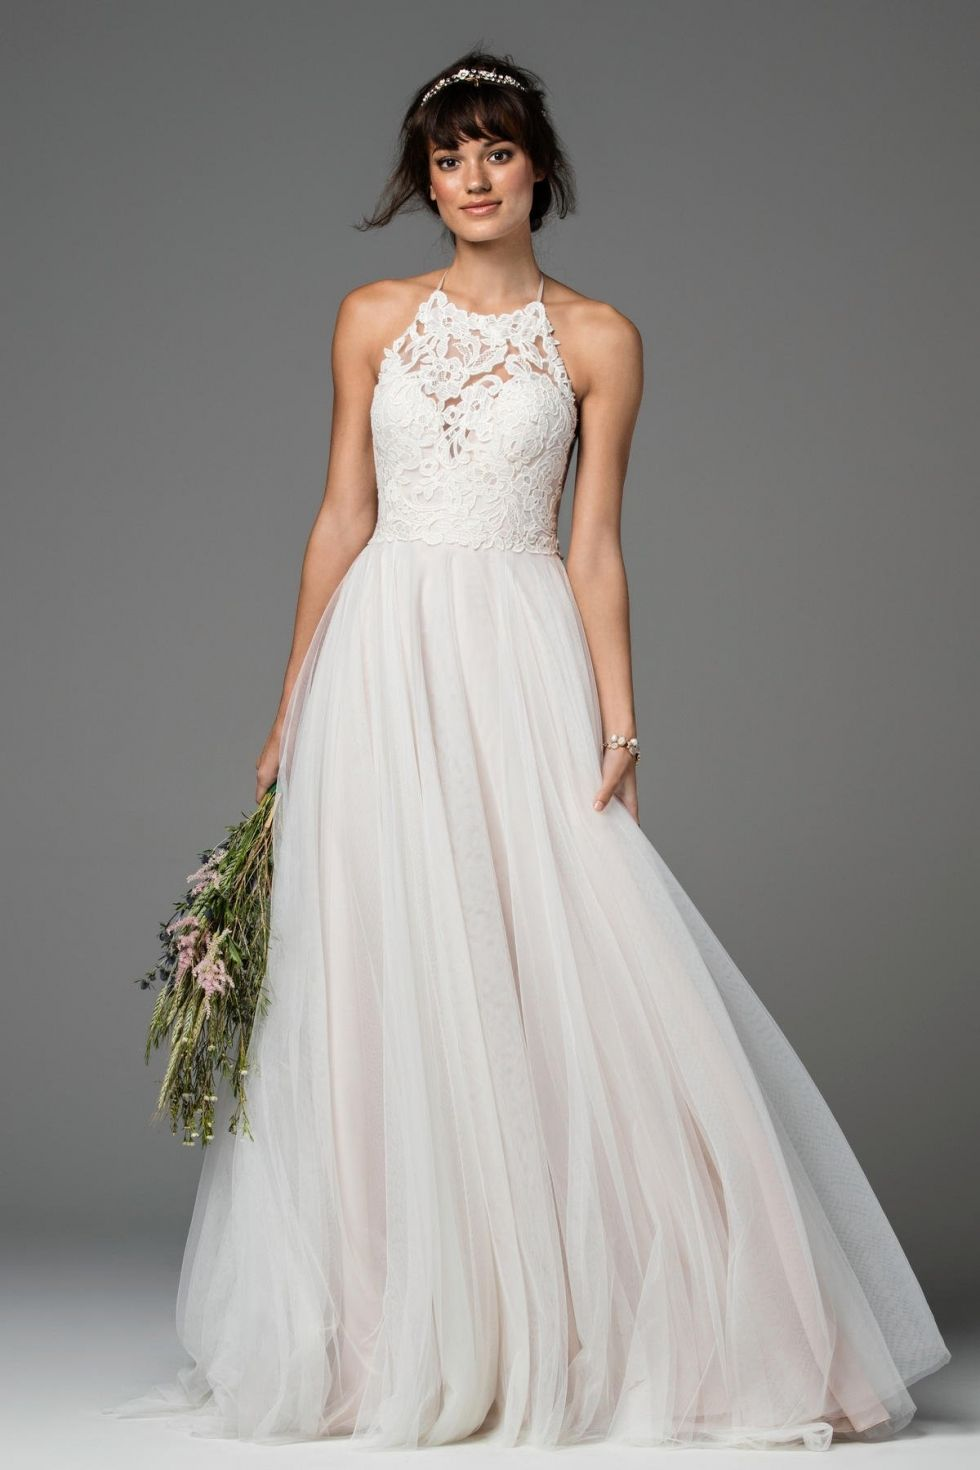 Willowby By Watters Esperance Style 58701 From Wedding Dresses Bridesmaids Dresseore At Bliss Bridal Salon